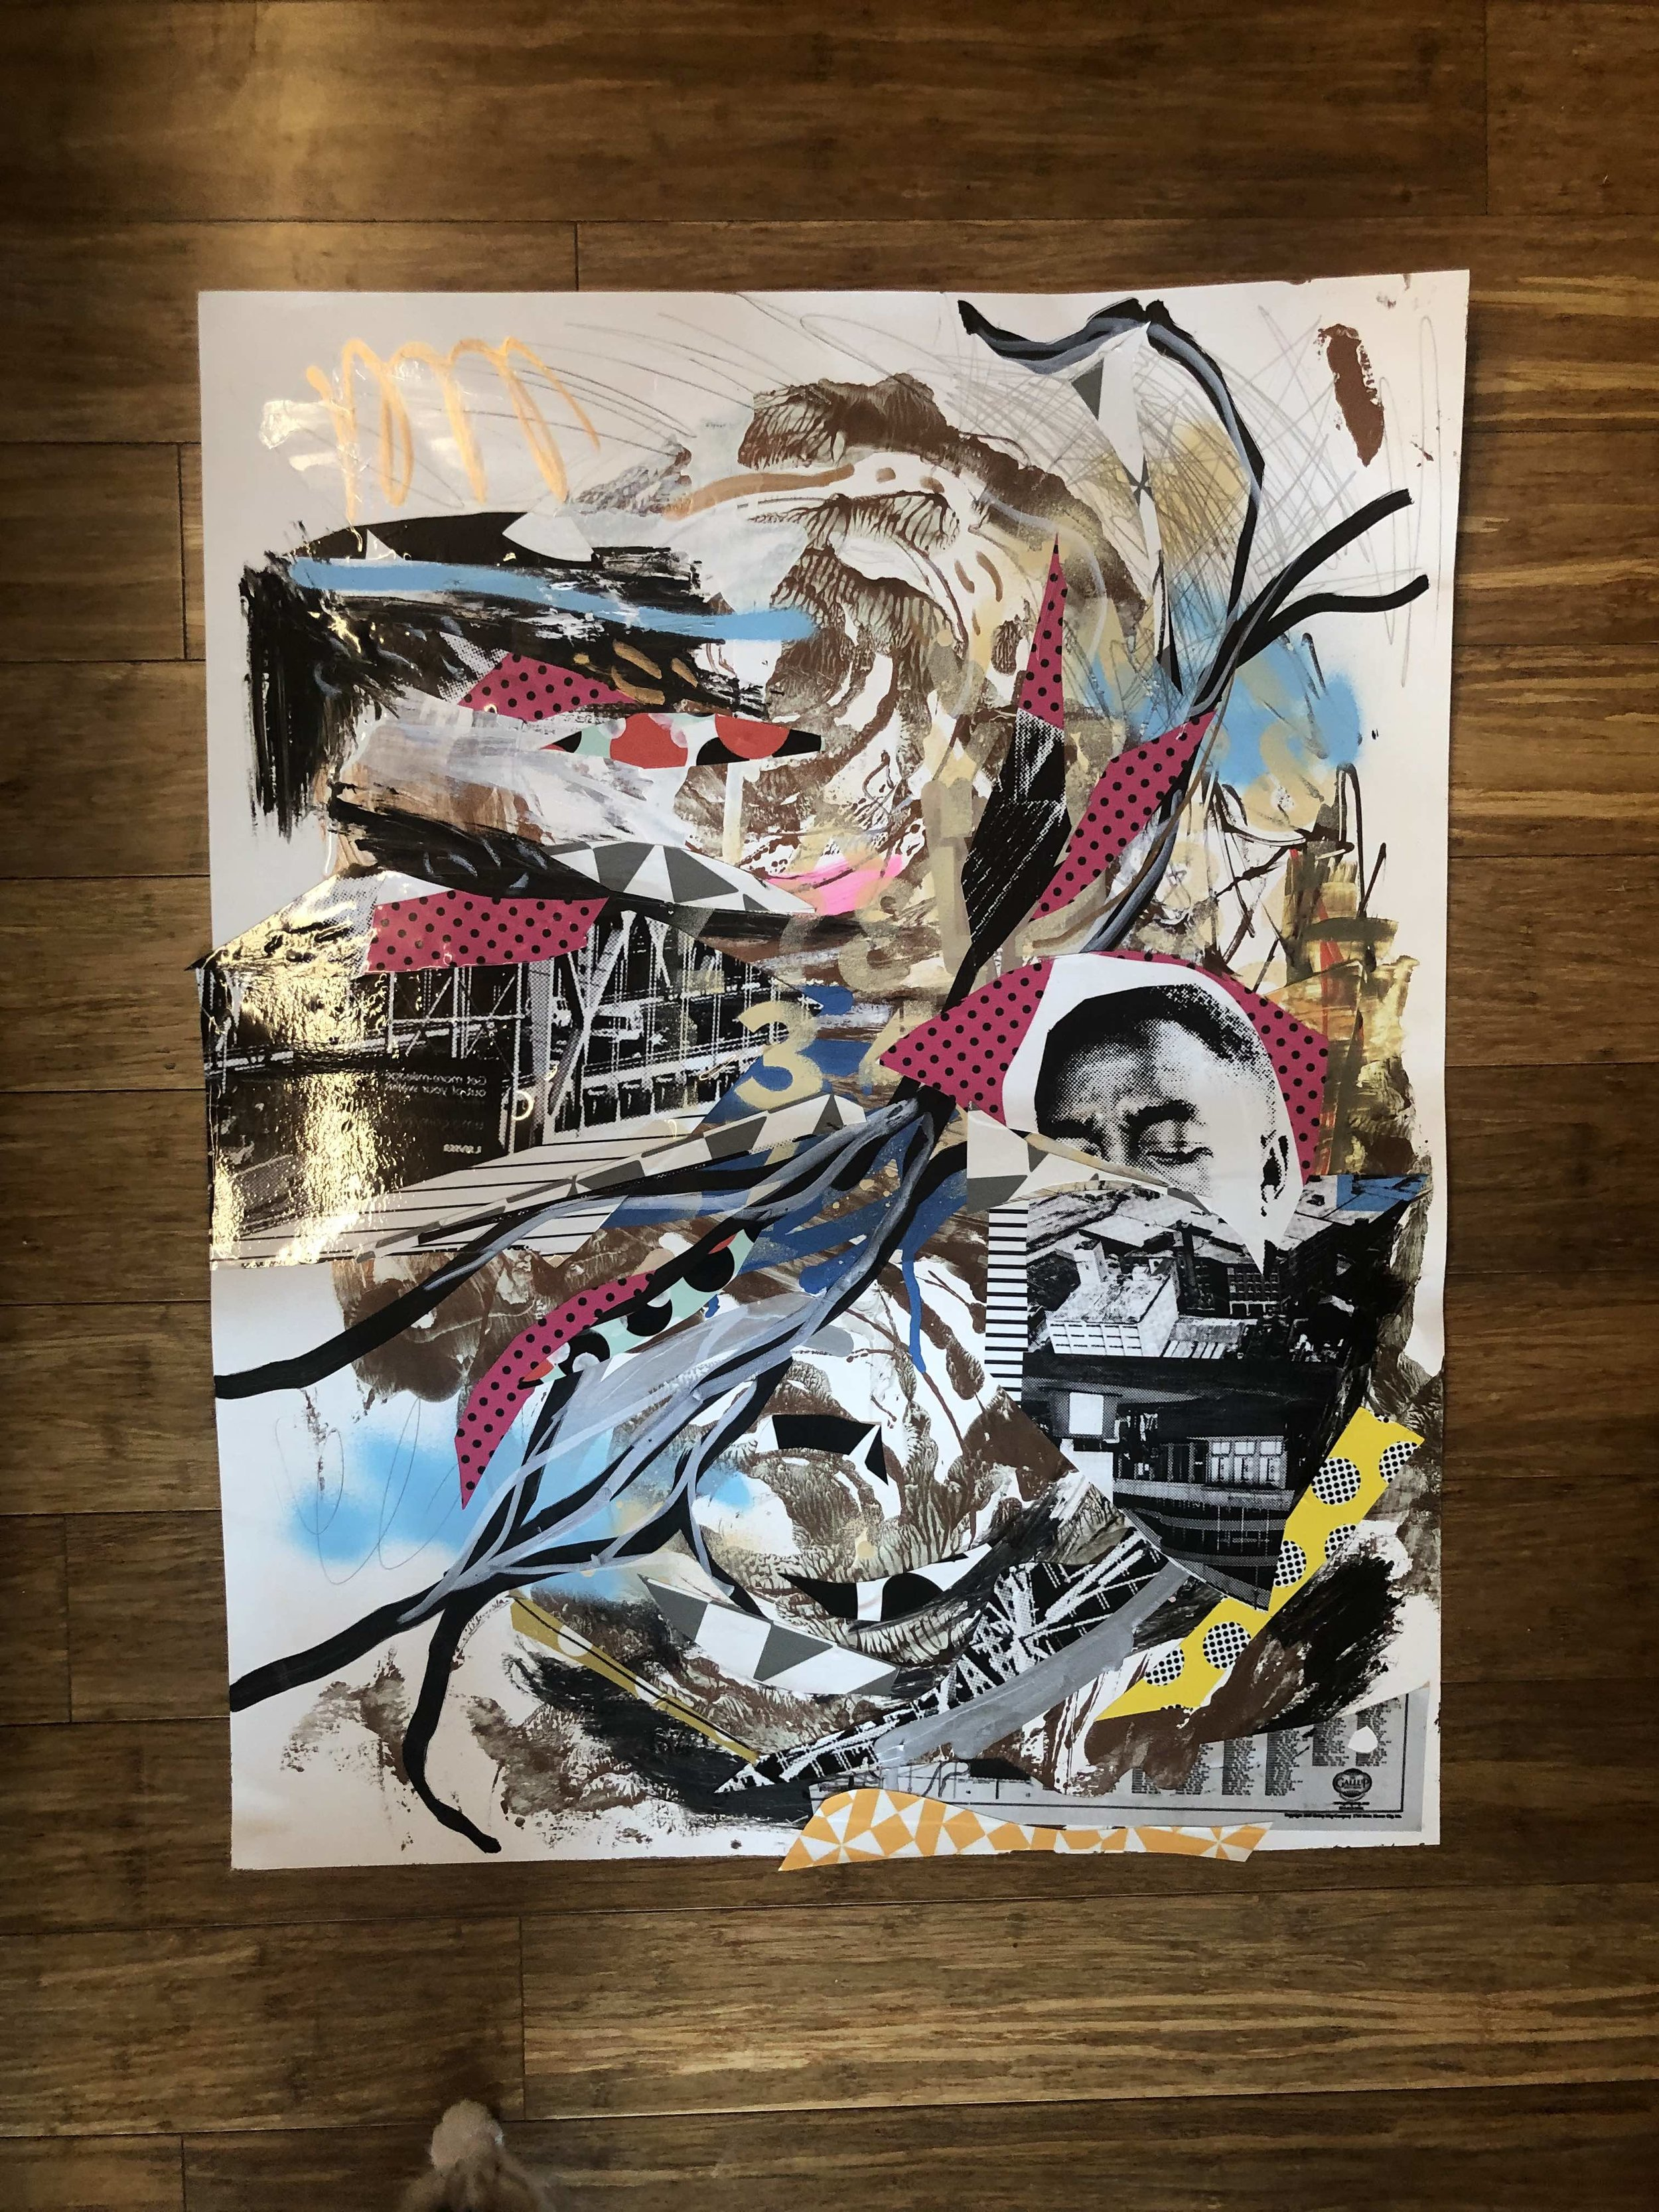 """UNTITLED"" 2019, 24"" X 32"" FOUND CLIPPINGS, PREPARED CLIPPINGS, MIXED MEDIA ON POSTER BOARD - $60 (REG. NFS)"